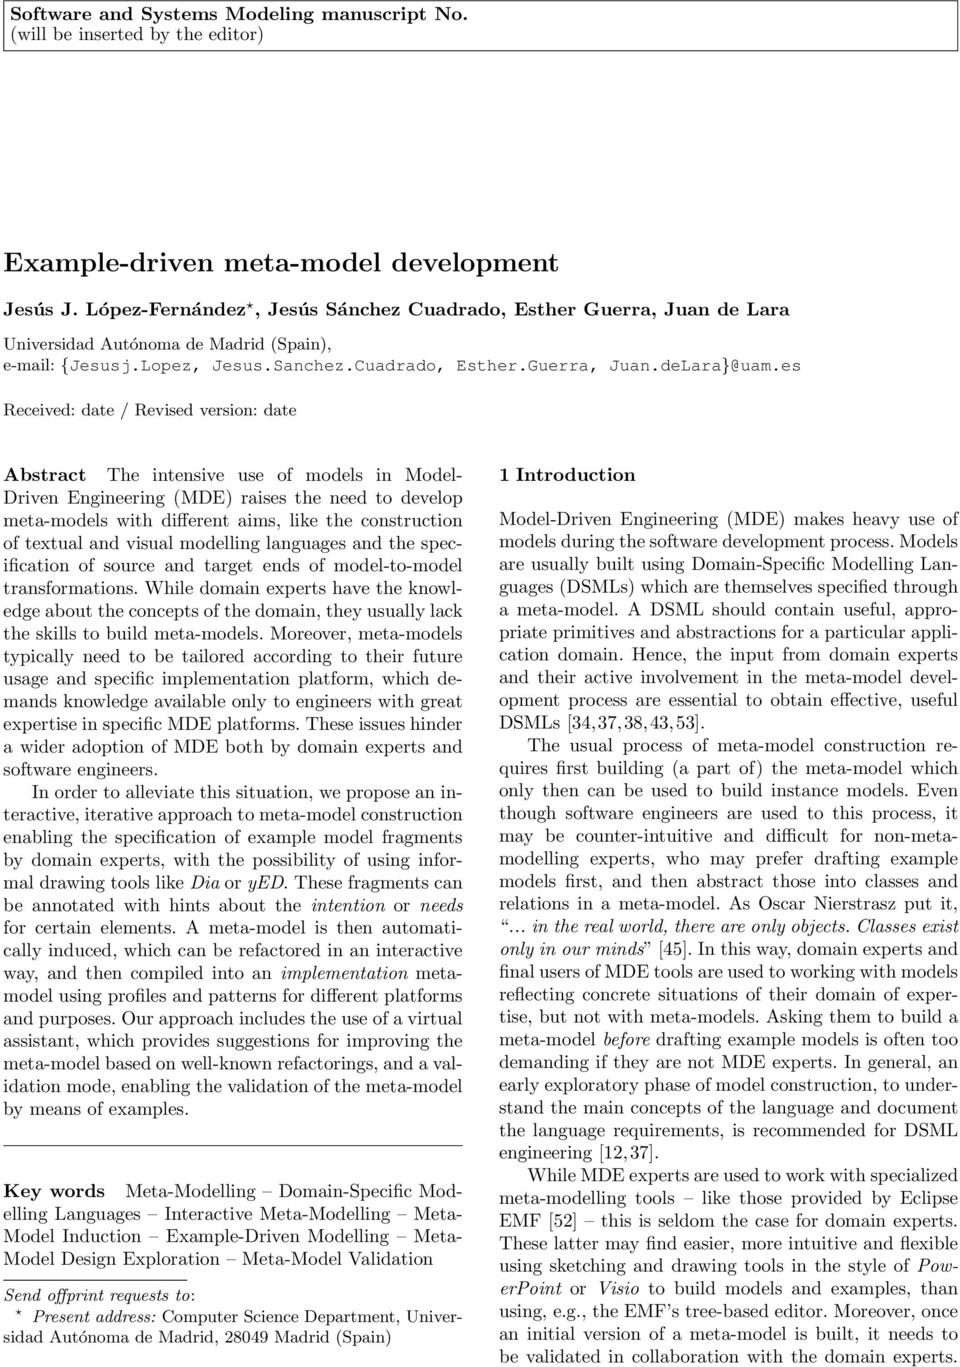 es Received: date / Revised version: date Abstract The intensive use of models in Model- Driven Engineering (MDE) raises the need to develop meta-models with different aims, like the construction of